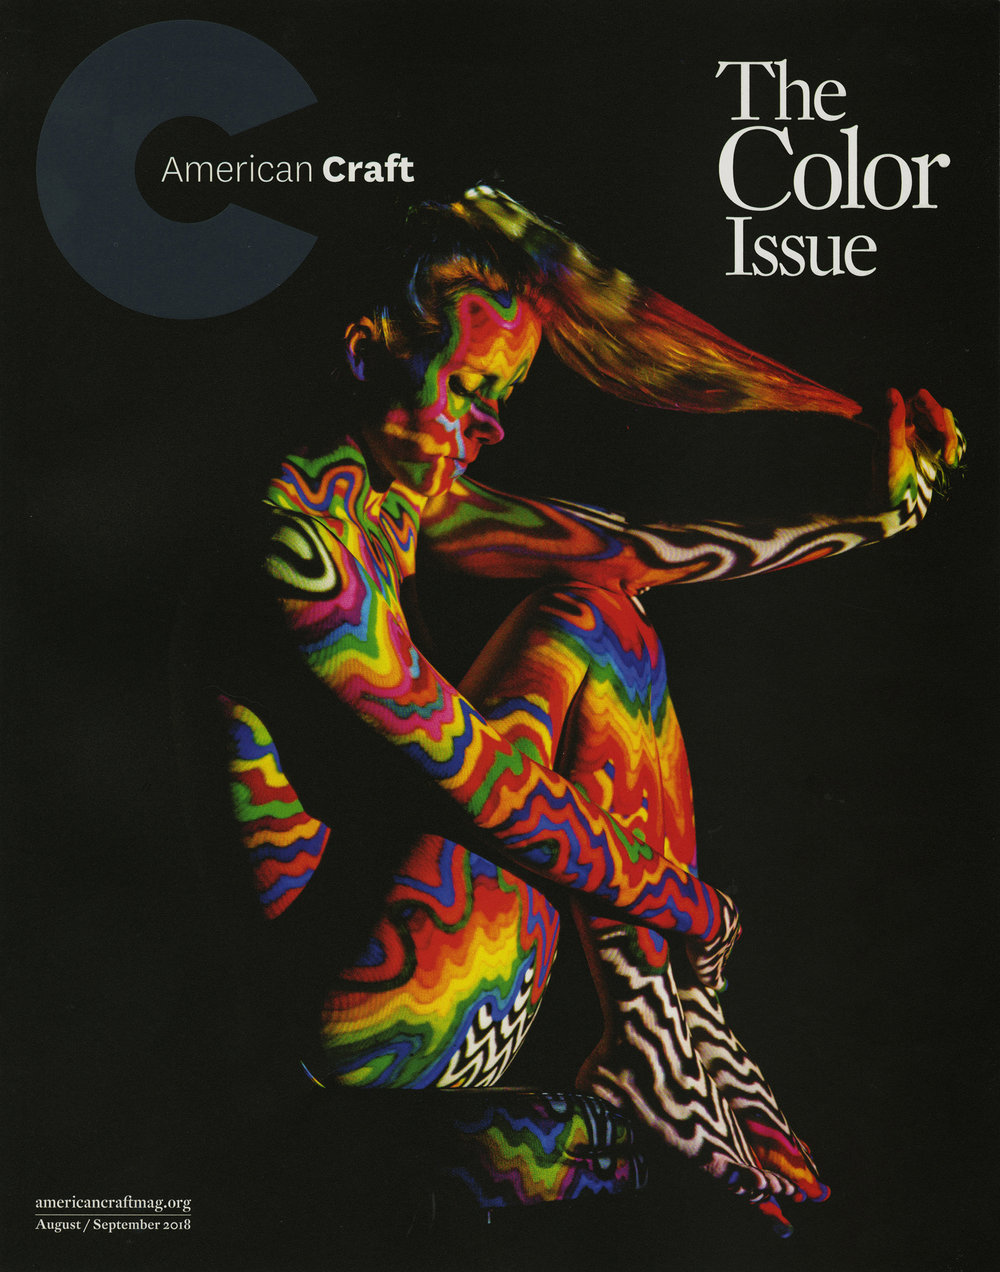 AmericanCraftCover-lores.jpg